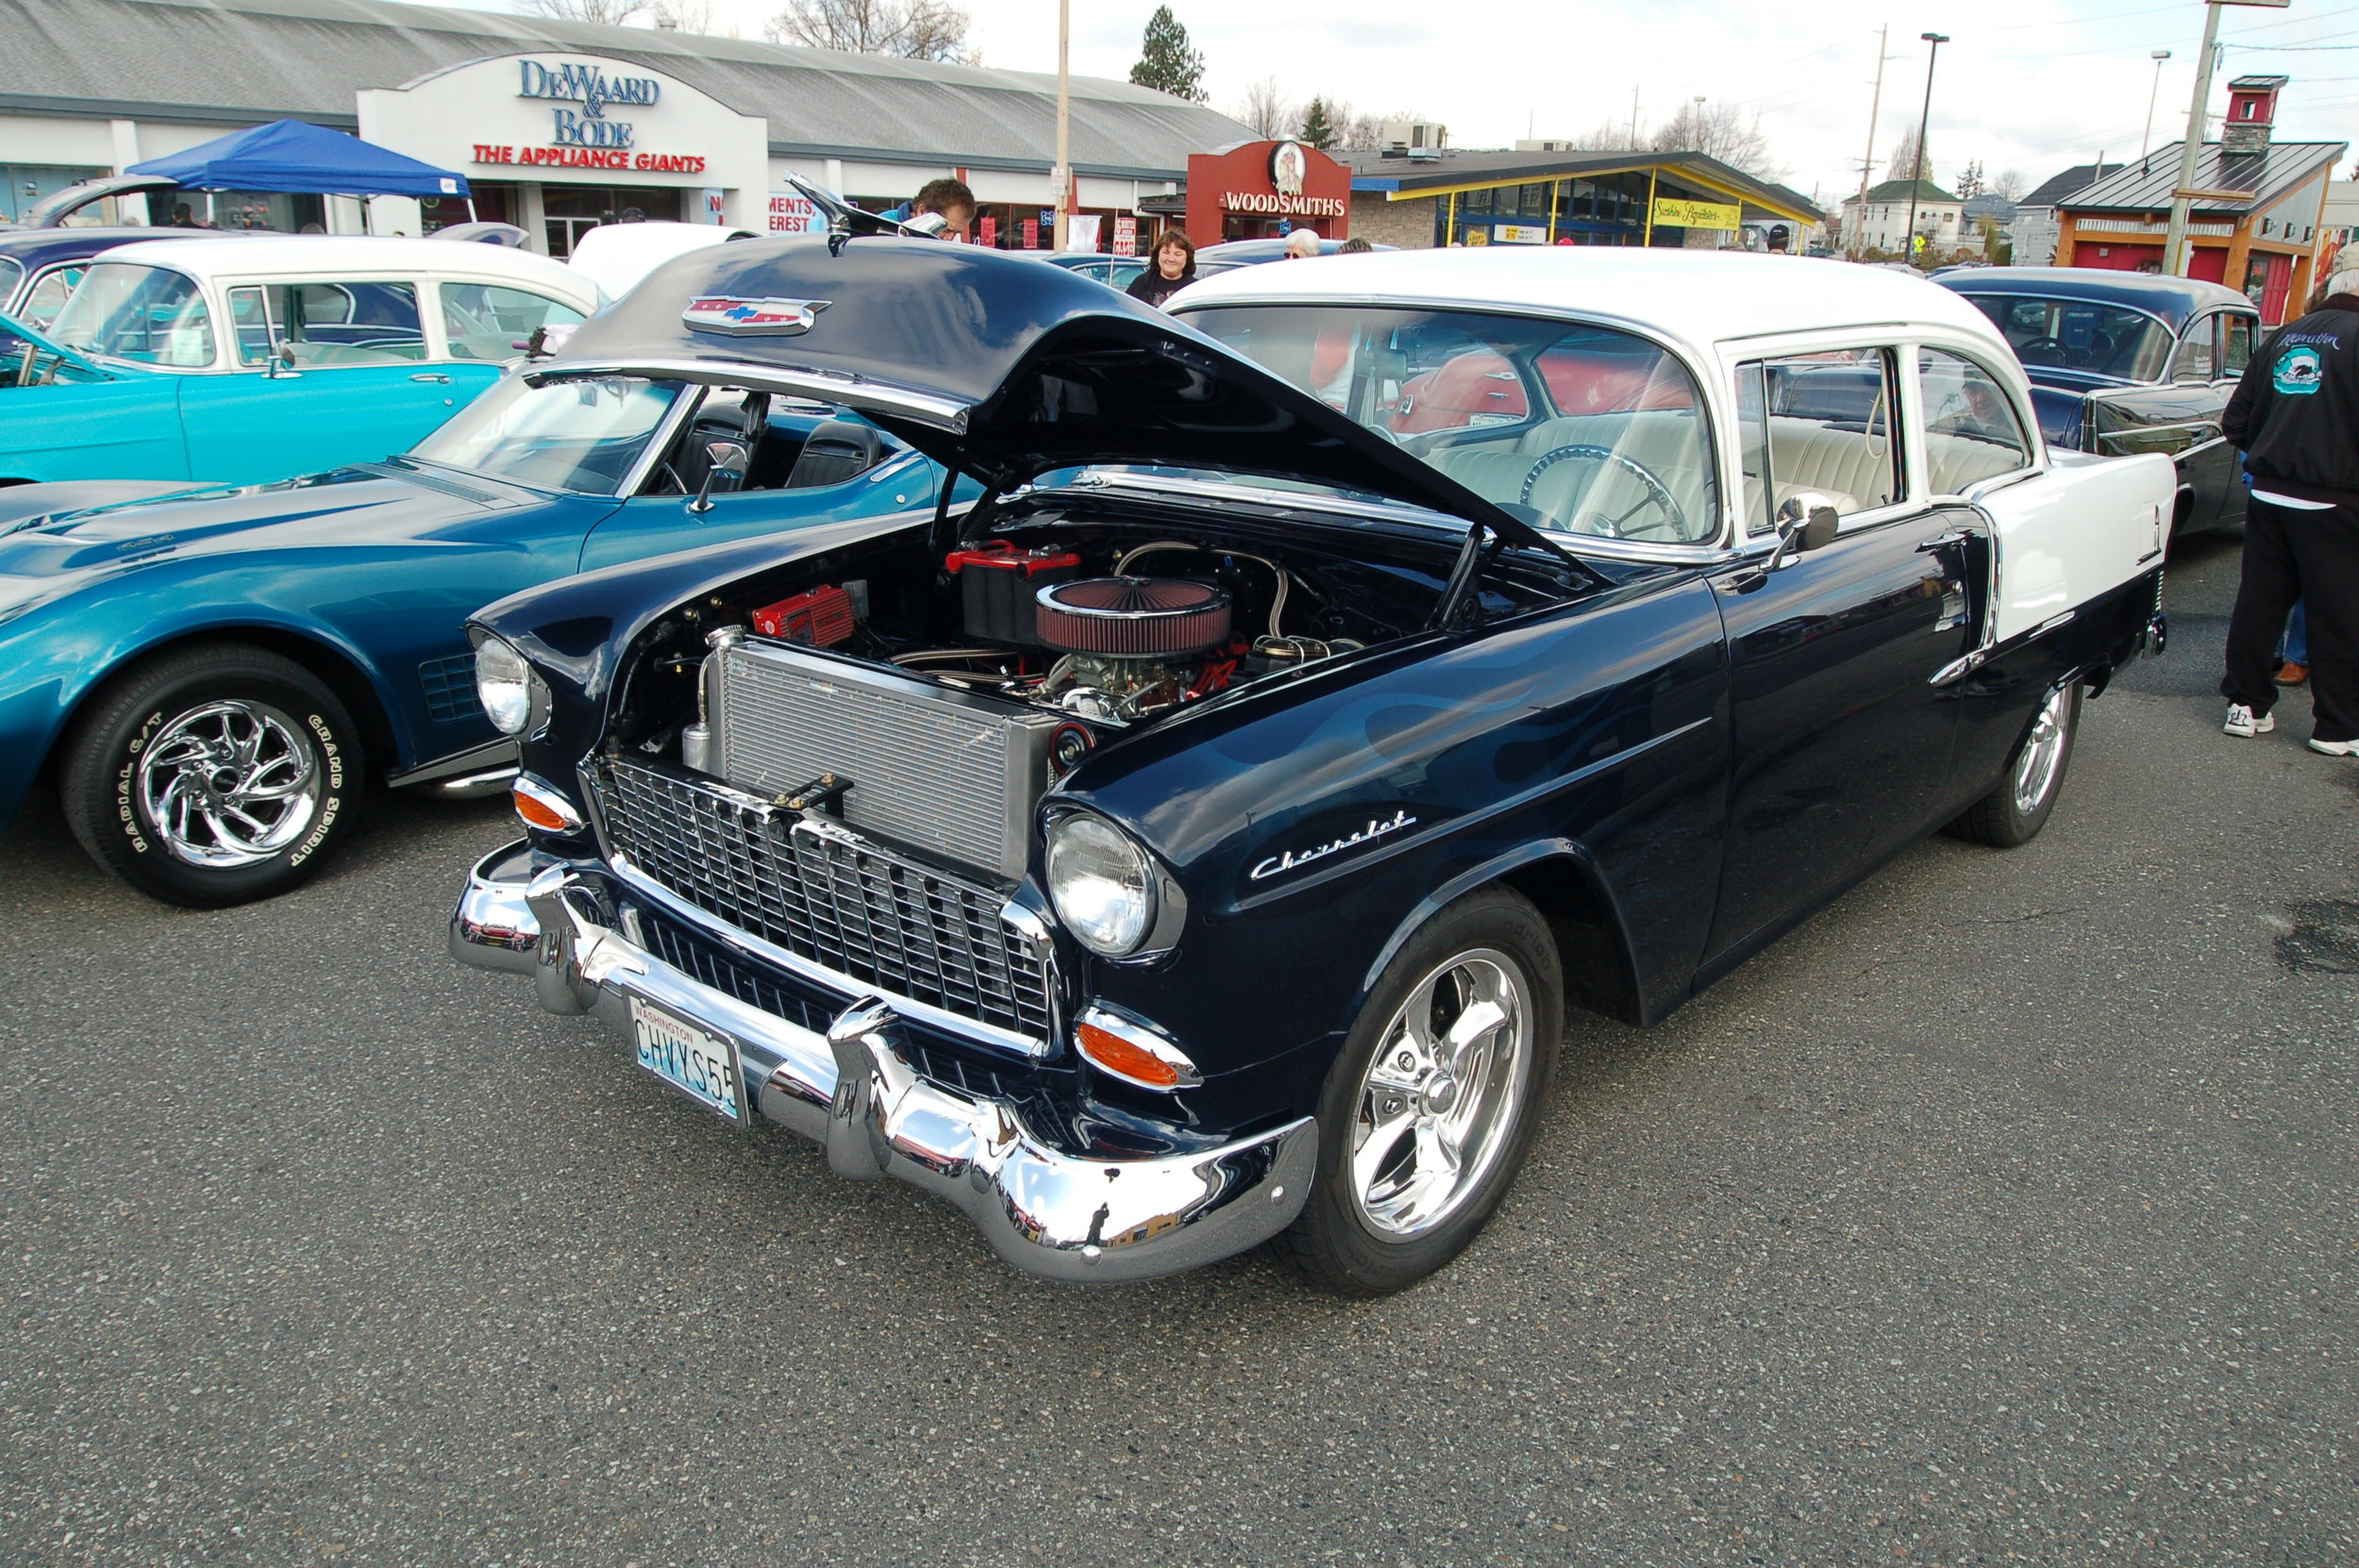 Chevaliers 55 Chevy.JPG